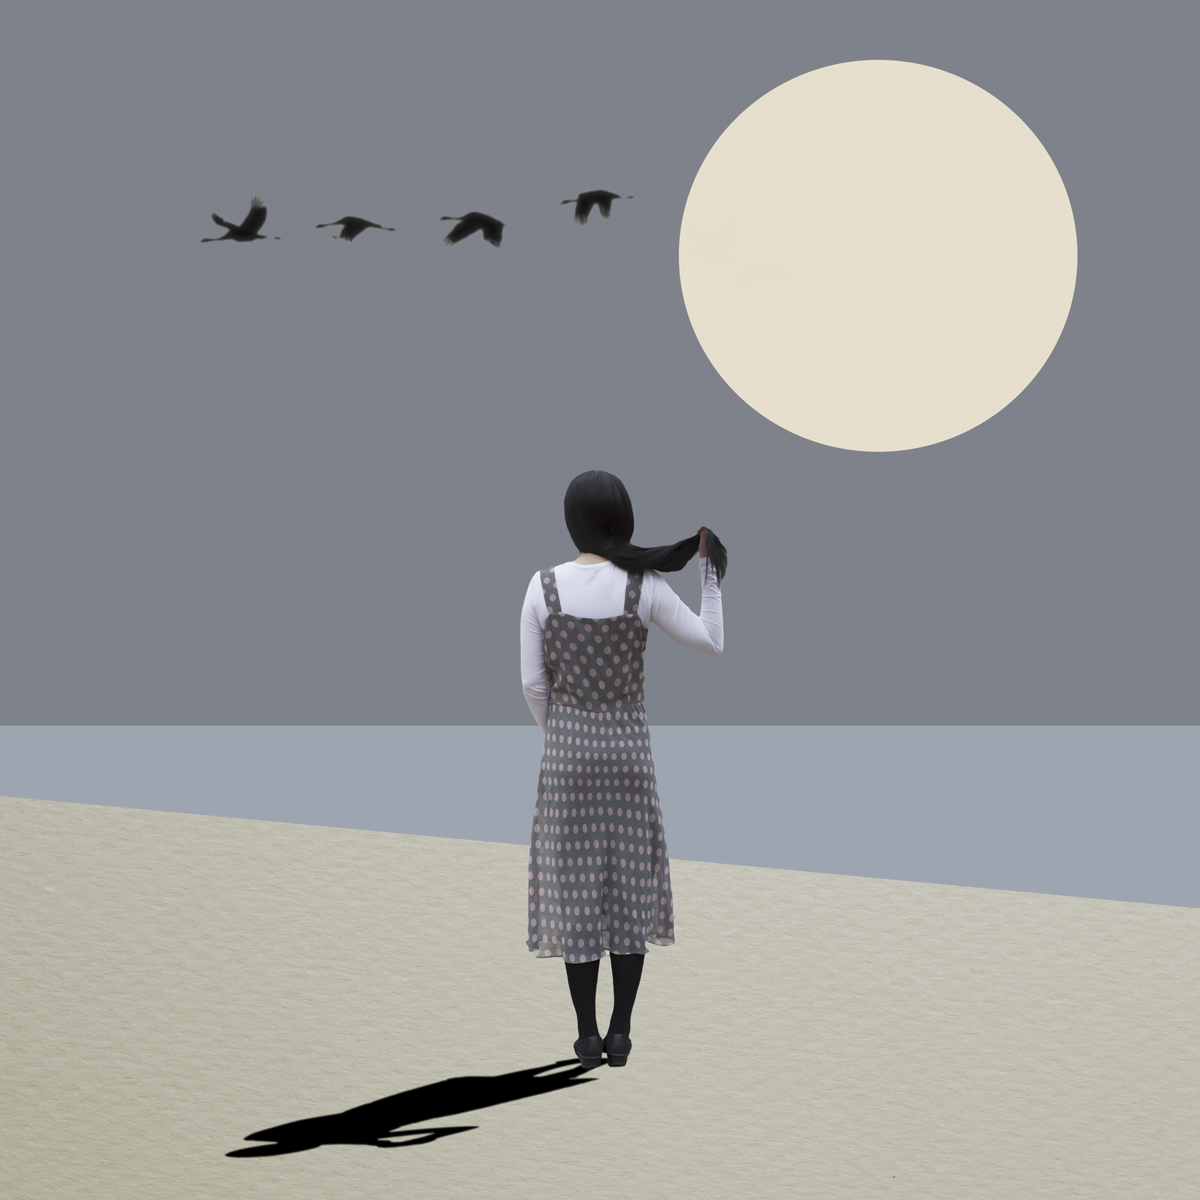 © Patty Maher, winner of the Pro Section of the 13th JMC Award